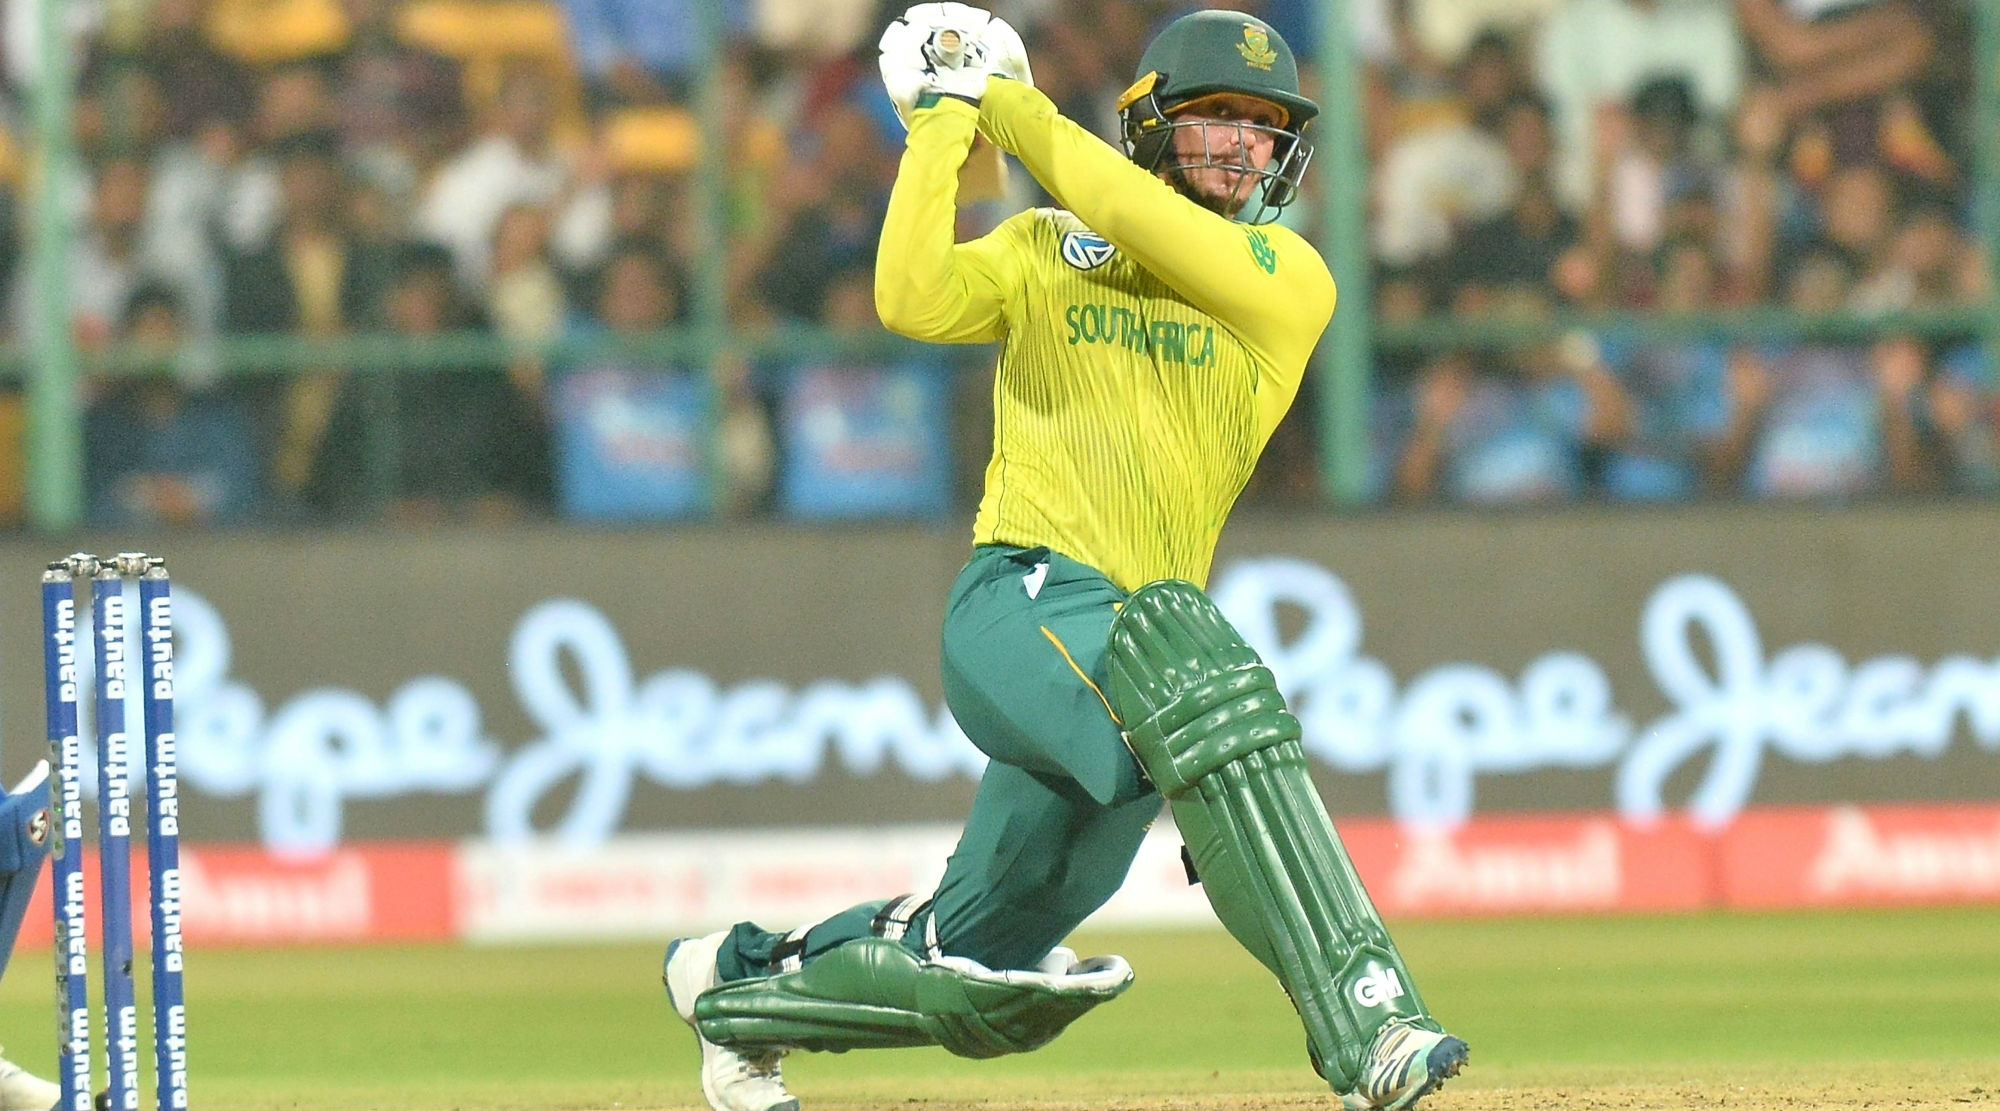 South Africa vs Australia 1st T20I 2020 Live Streaming on SonyLiv: How to Watch Free Live Telecast of SA vs AUS on TV & Online in India